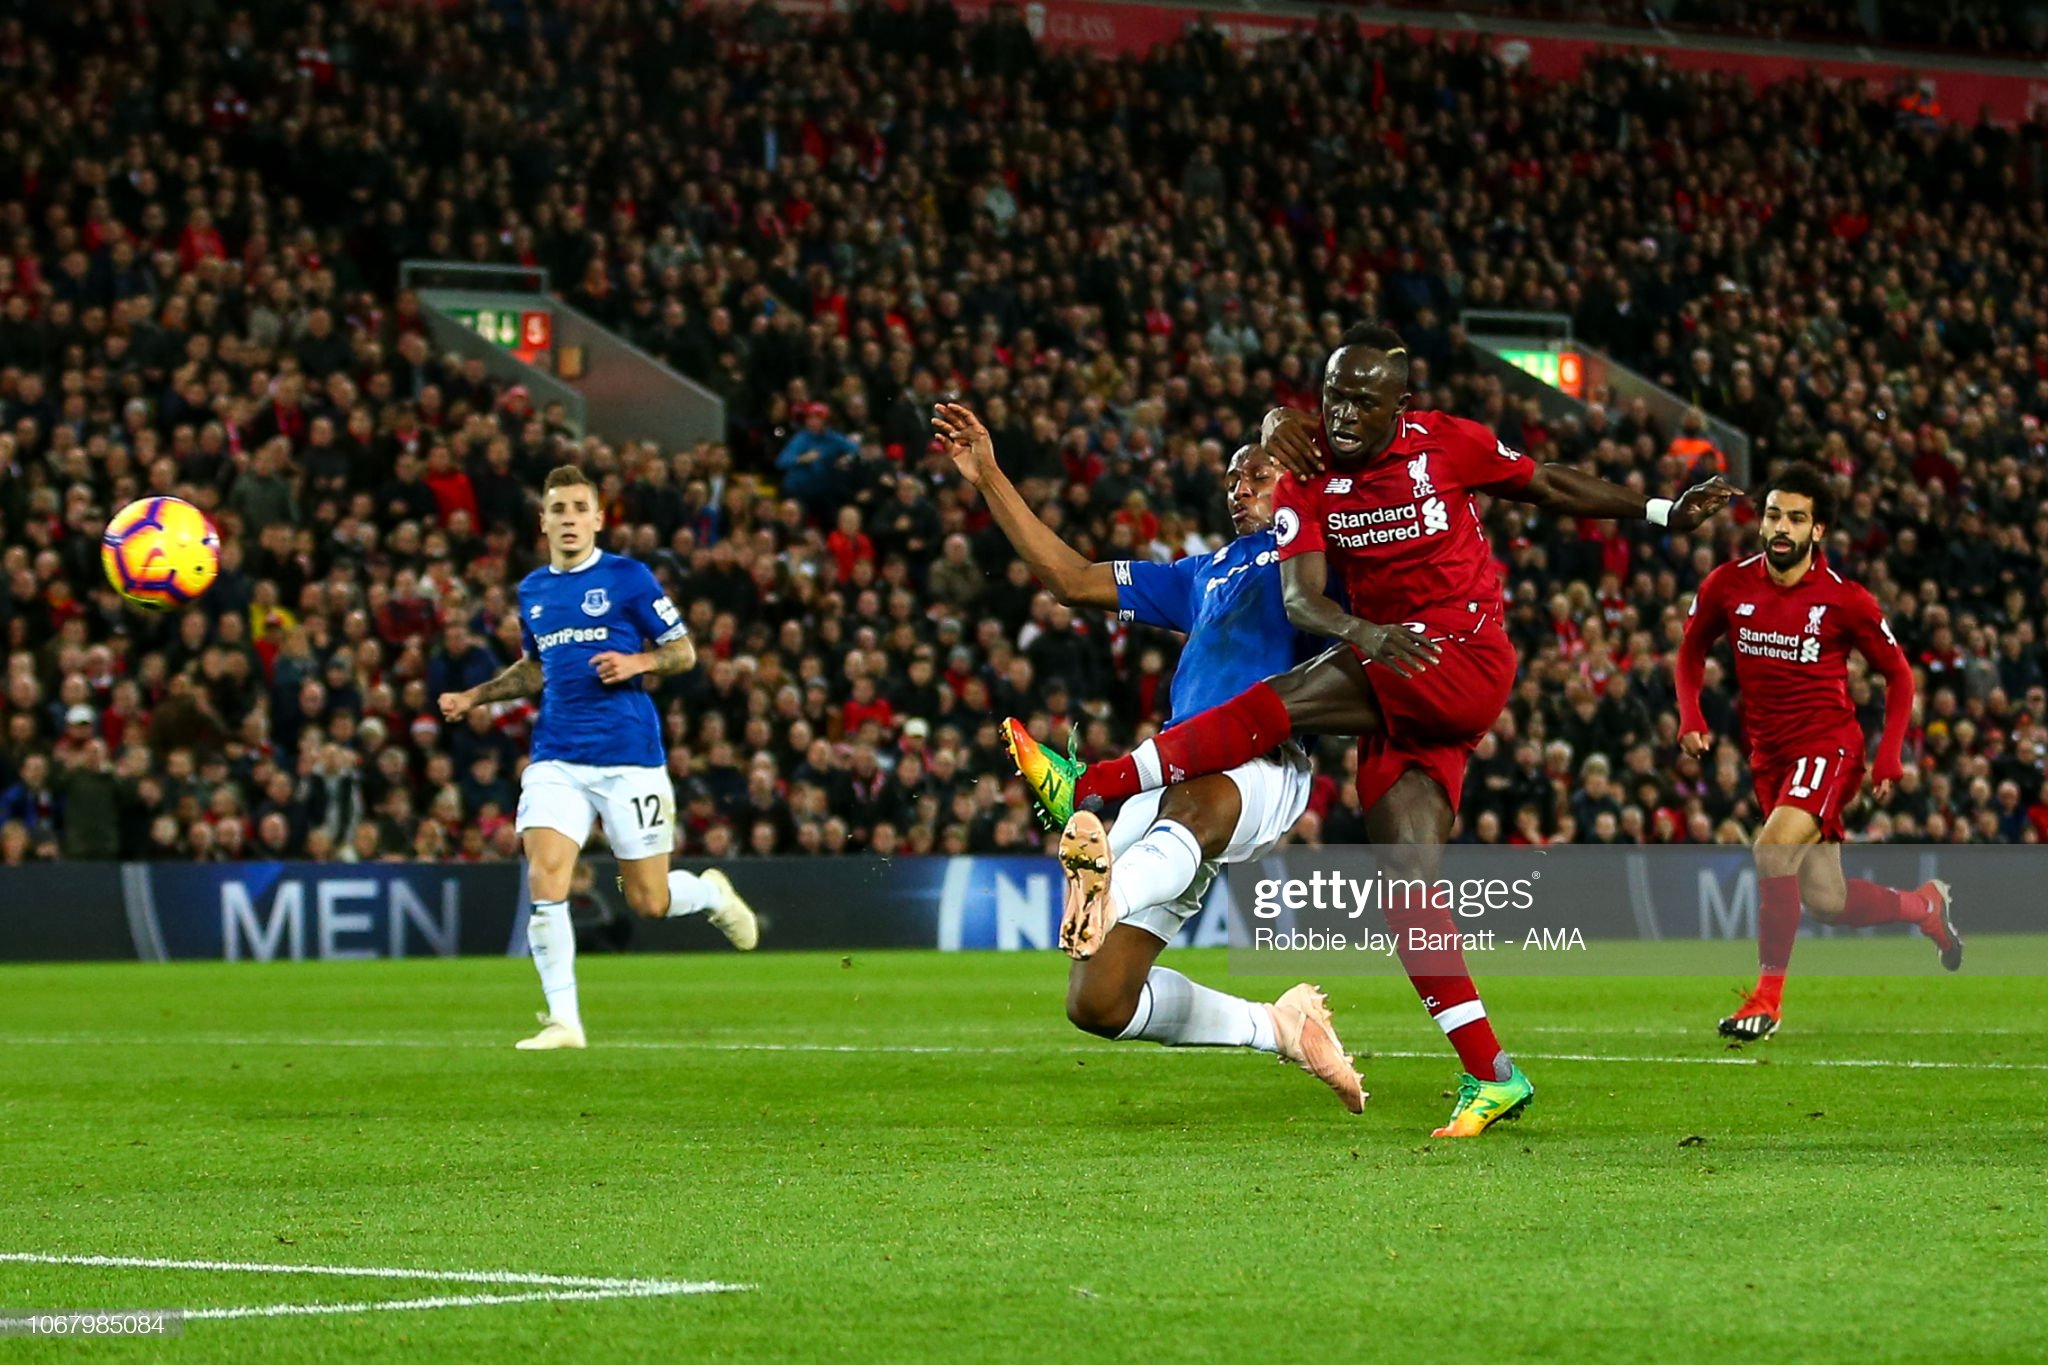 Liverpool v Everton preview, prediction and odds